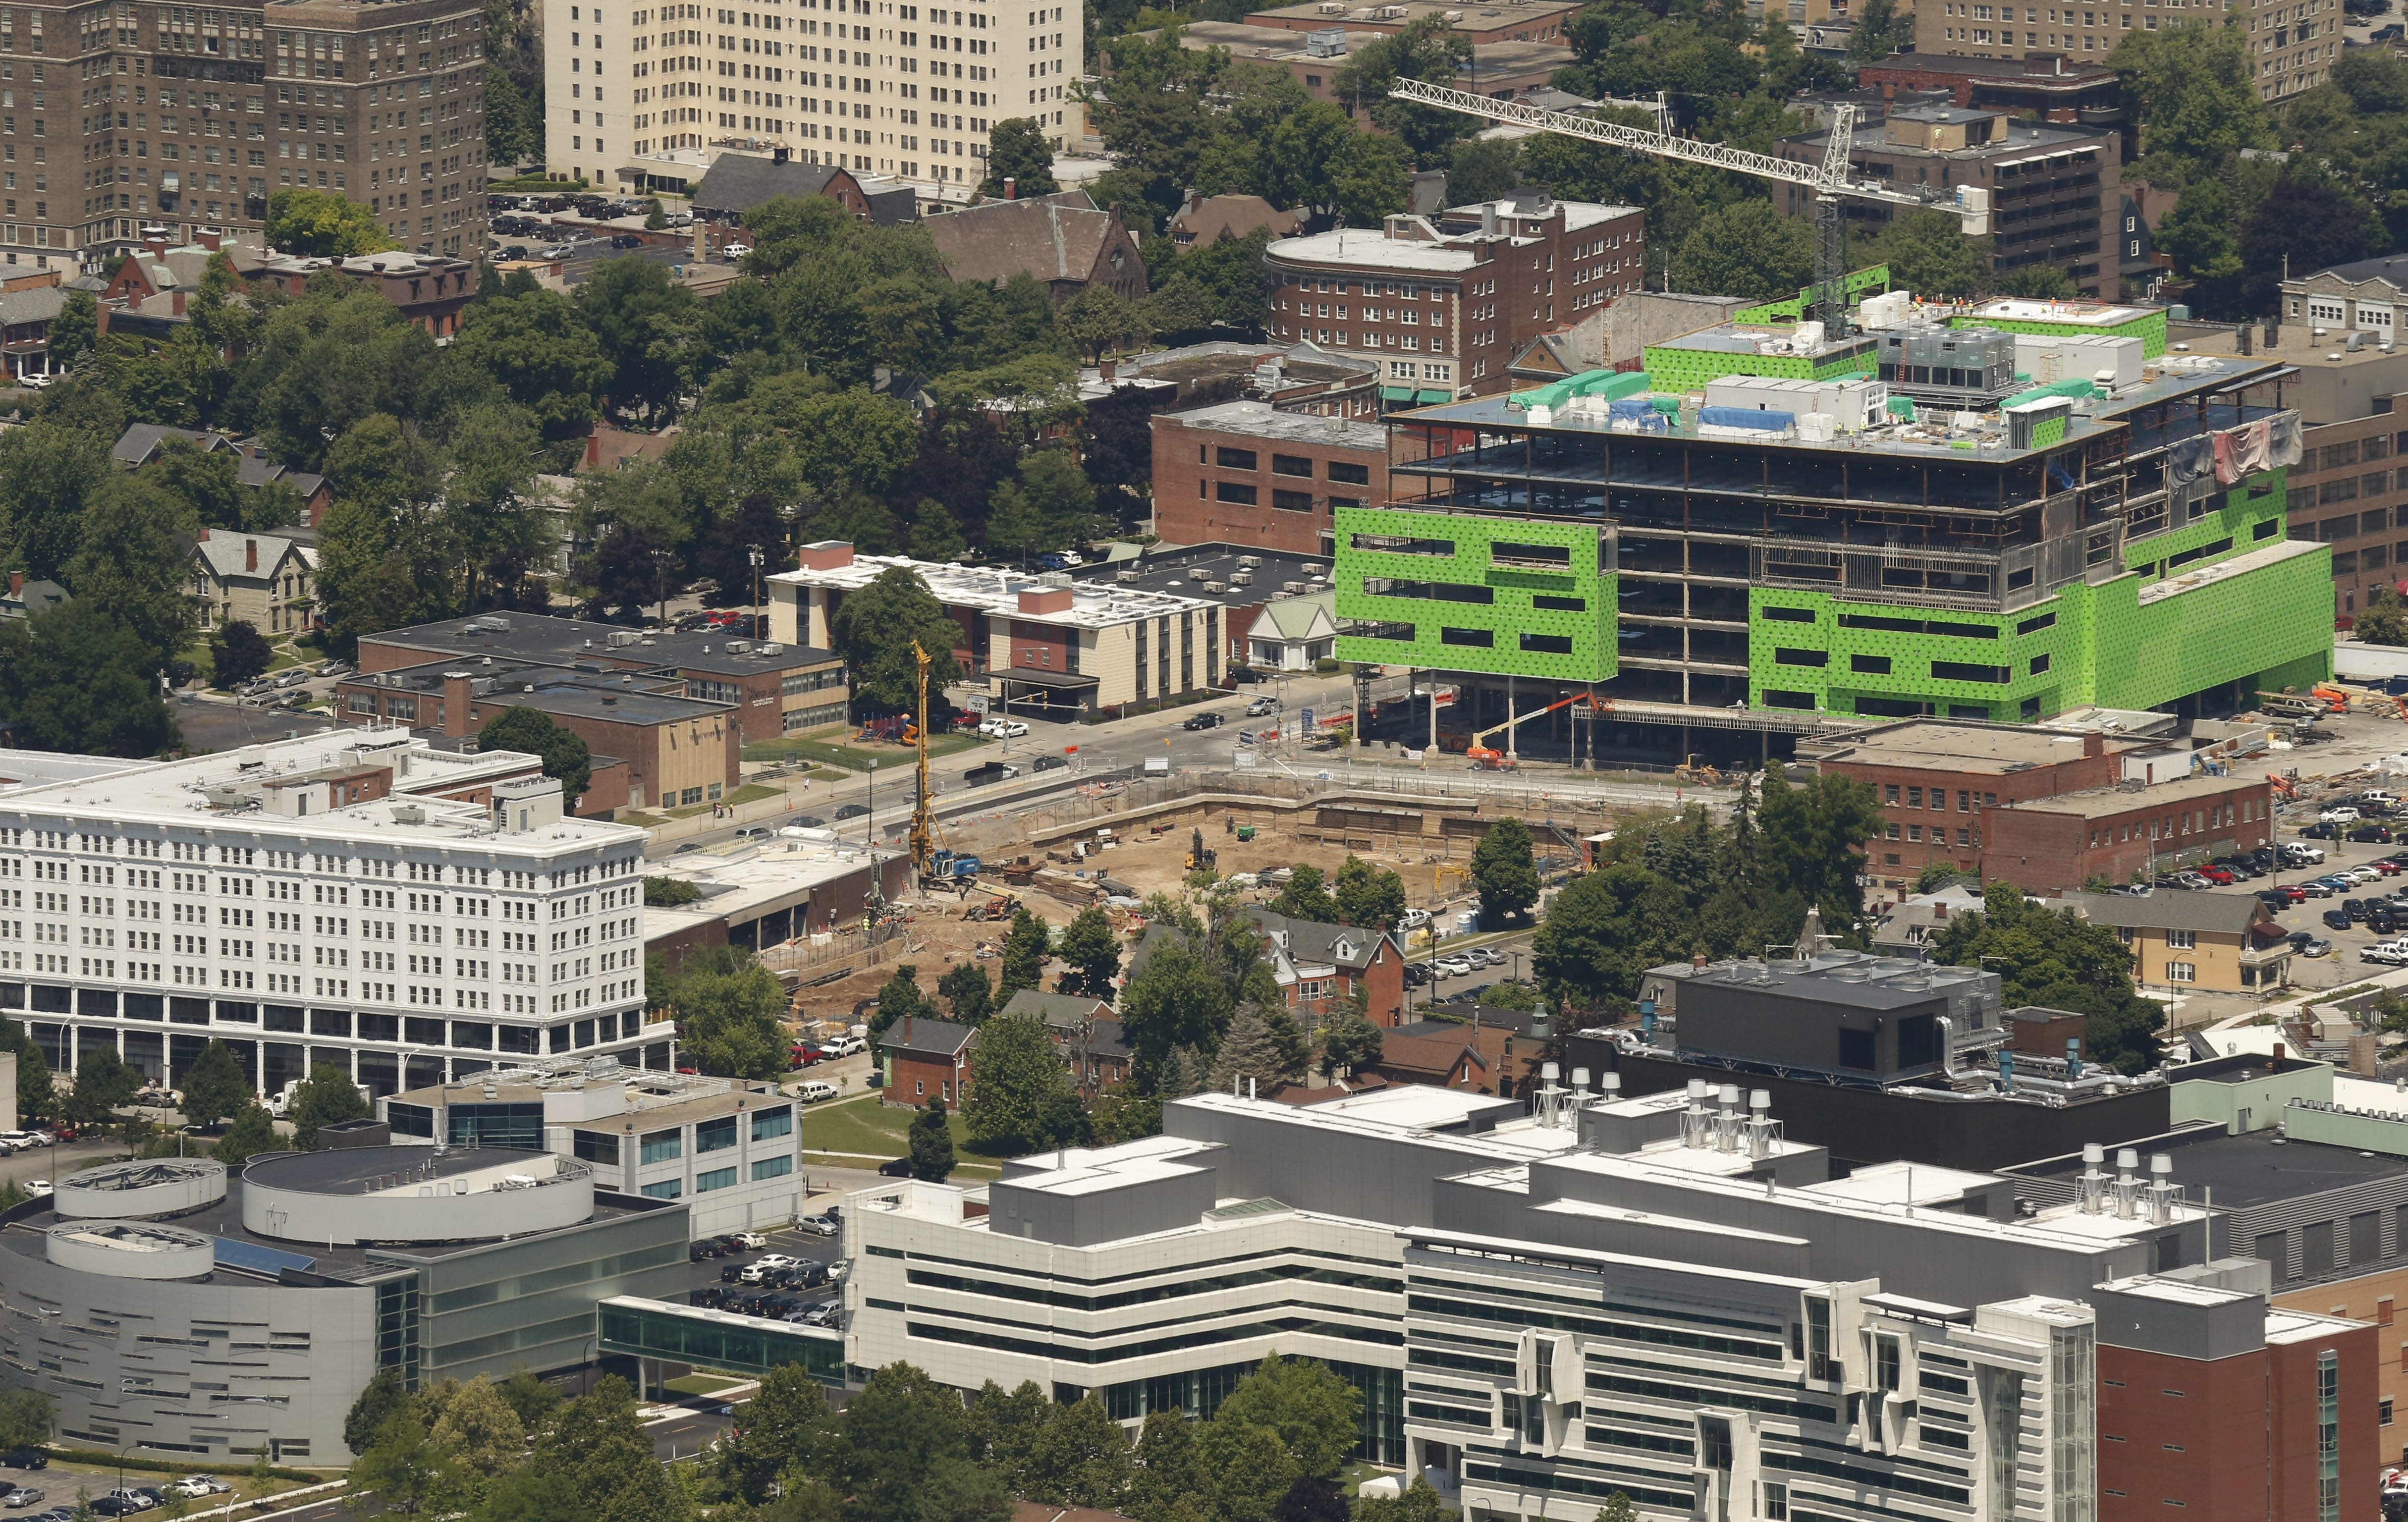 A Medical Campus anchor: Construction will continue on the University at Buffalo School of Medicine and Biomedical Sciences.